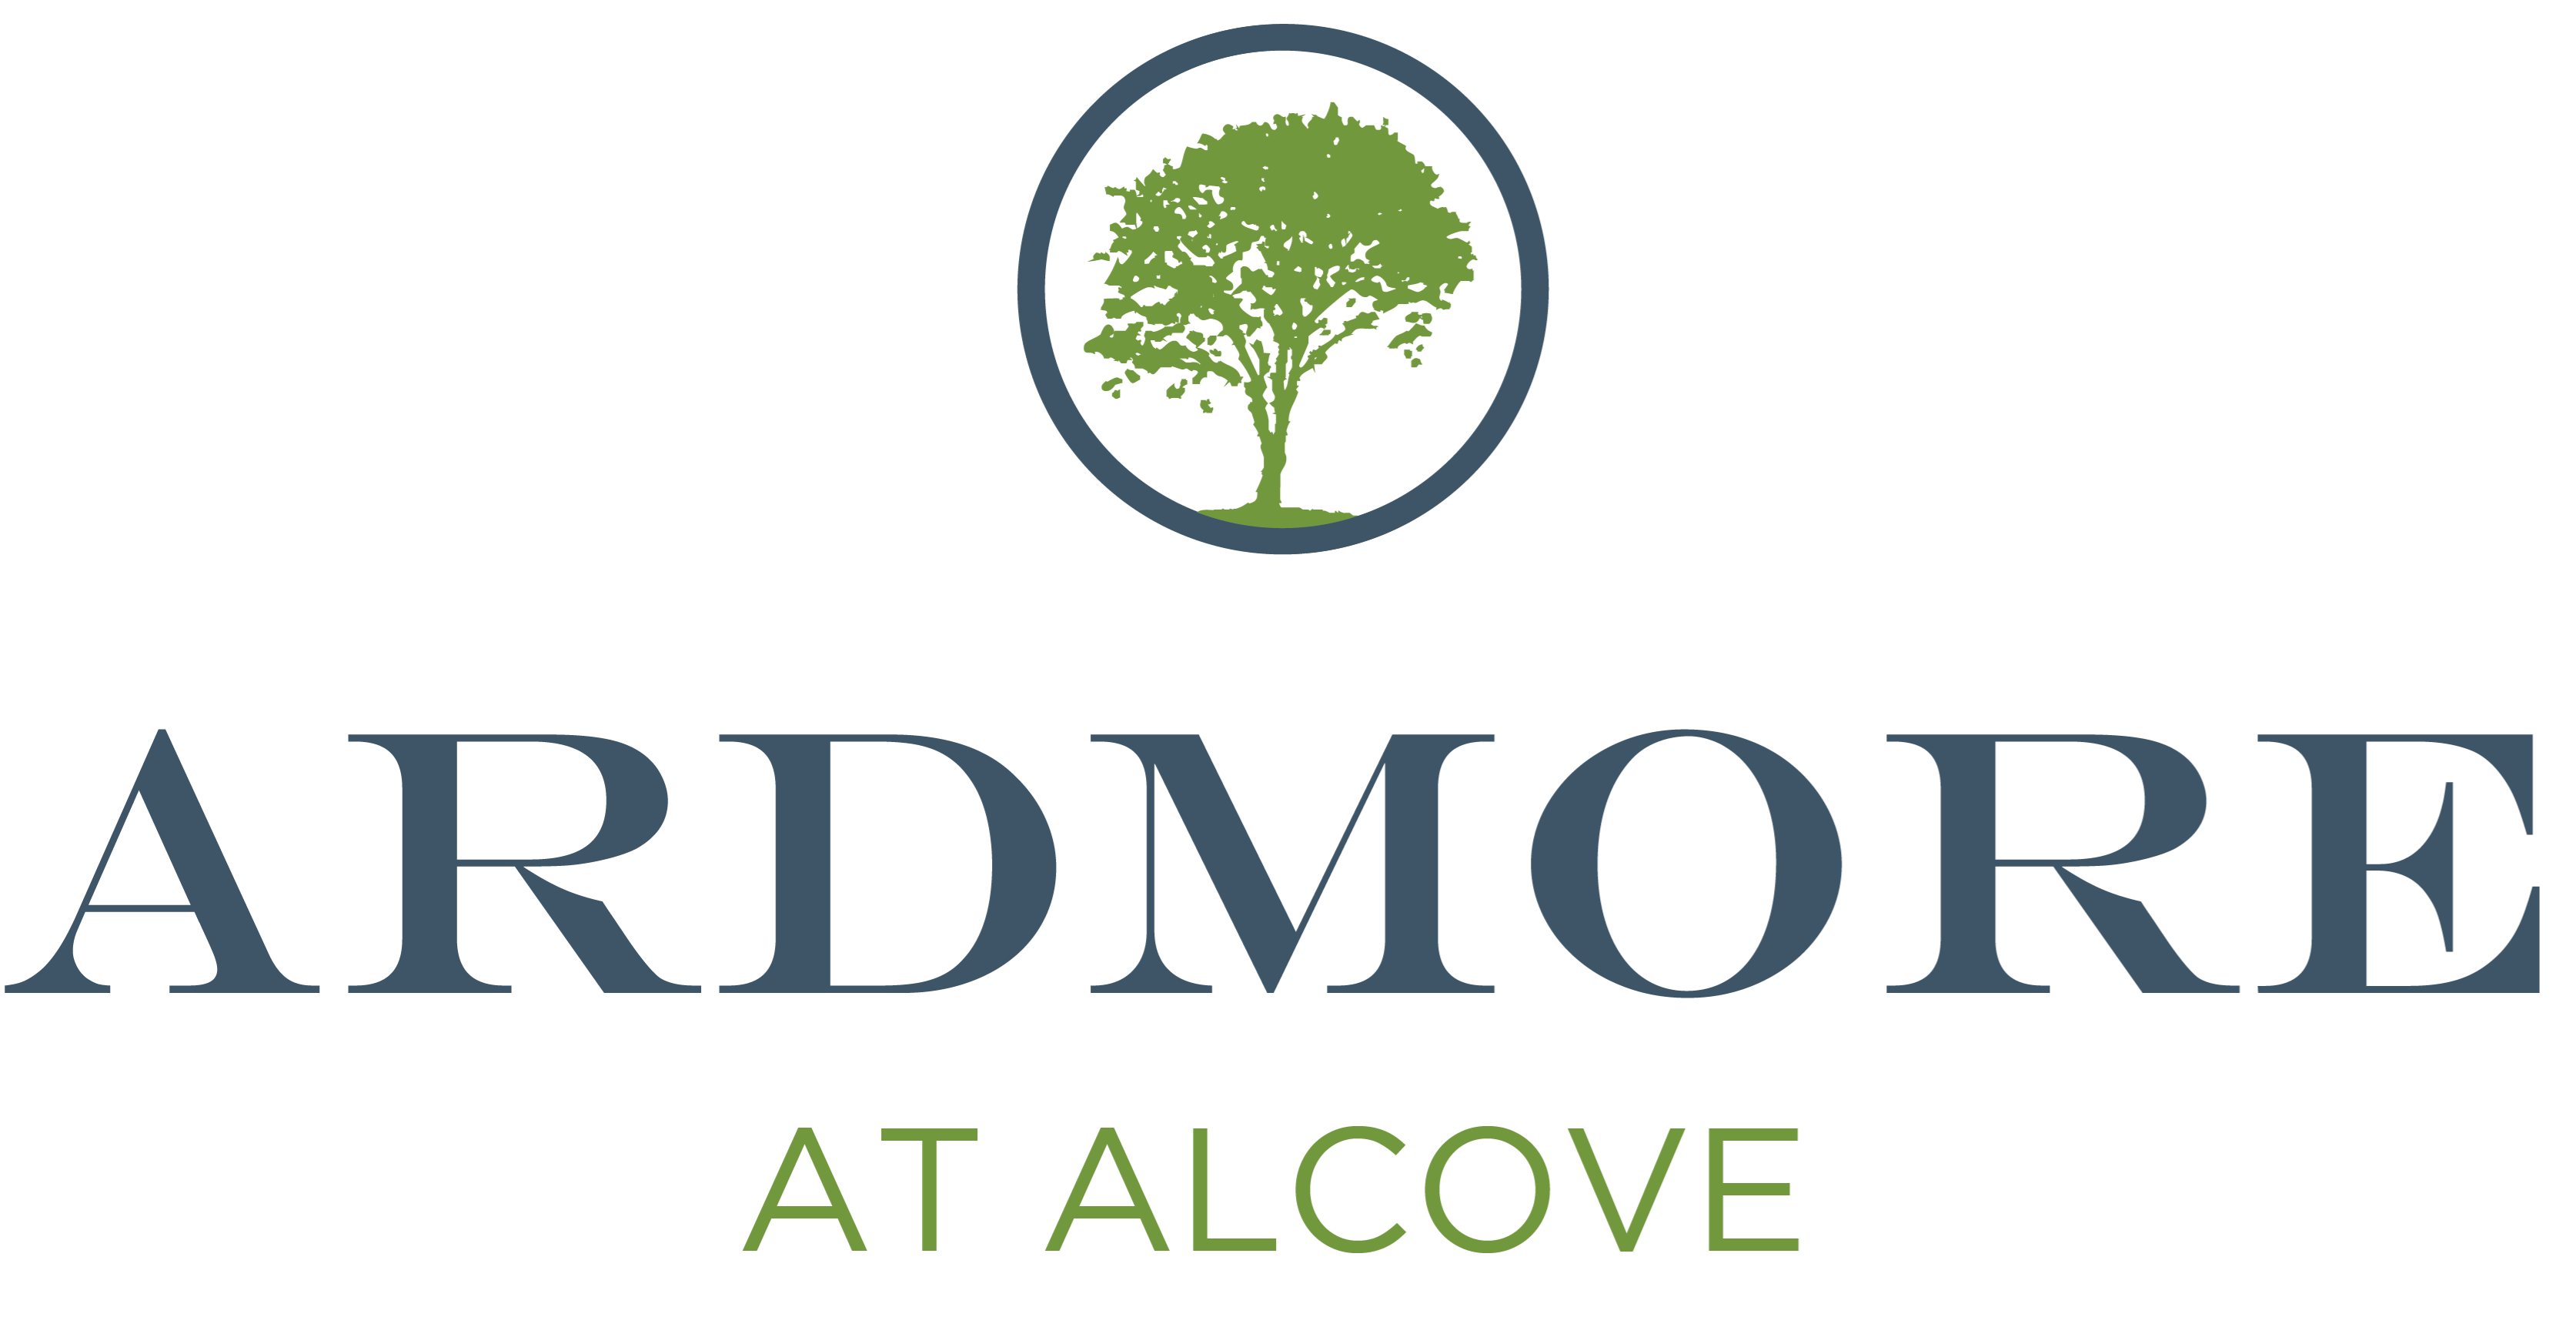 Ardmore at Alcove   Apartments in Mooresville, NC